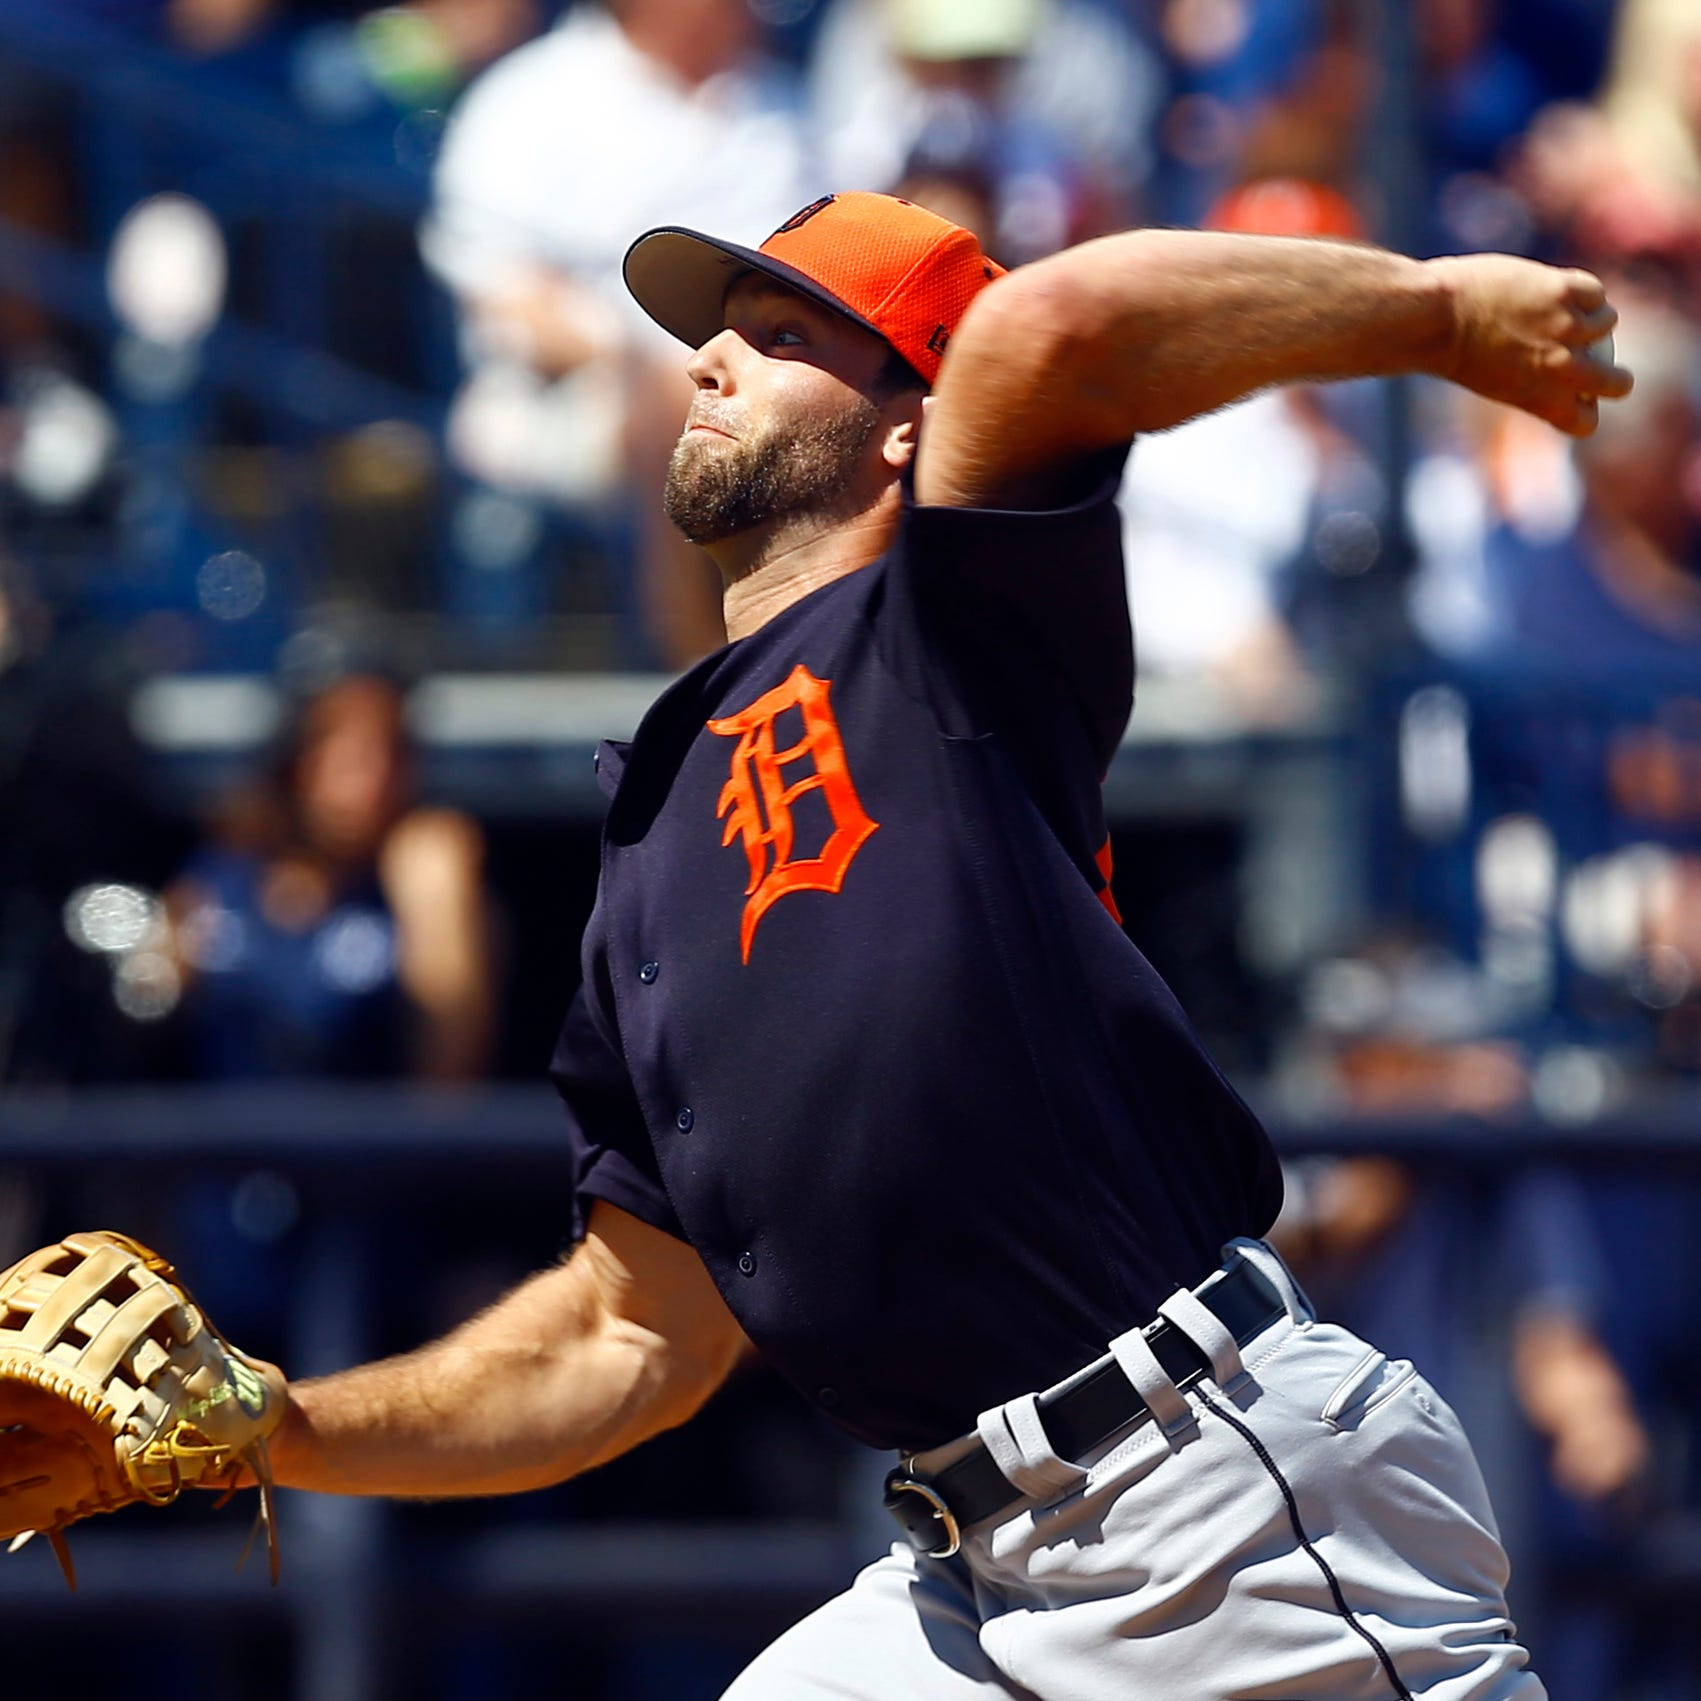 Detroit Tigers score vs. Boston Red Sox in spring: Live updates